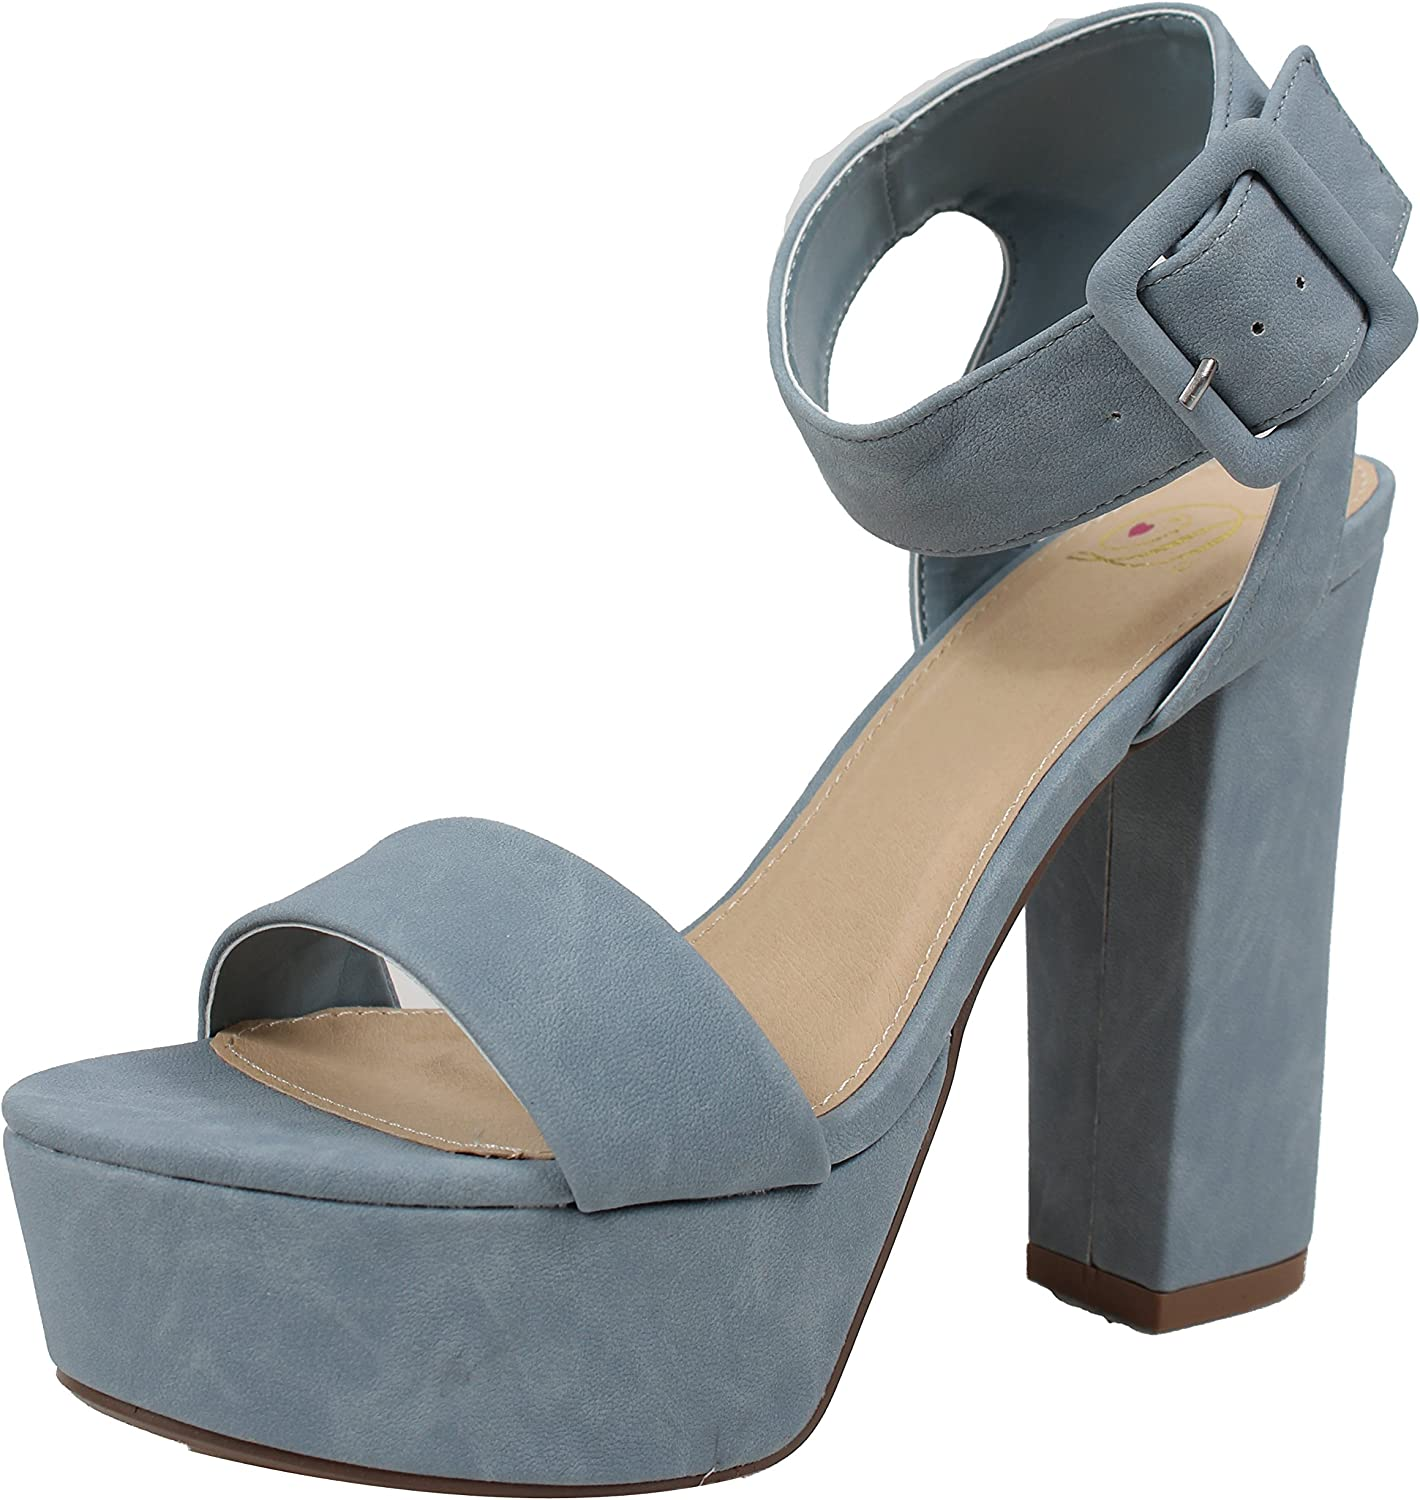 Delicious Women's Open Toe Thick Wide Strap Ankle Strap Block Heel Sandal